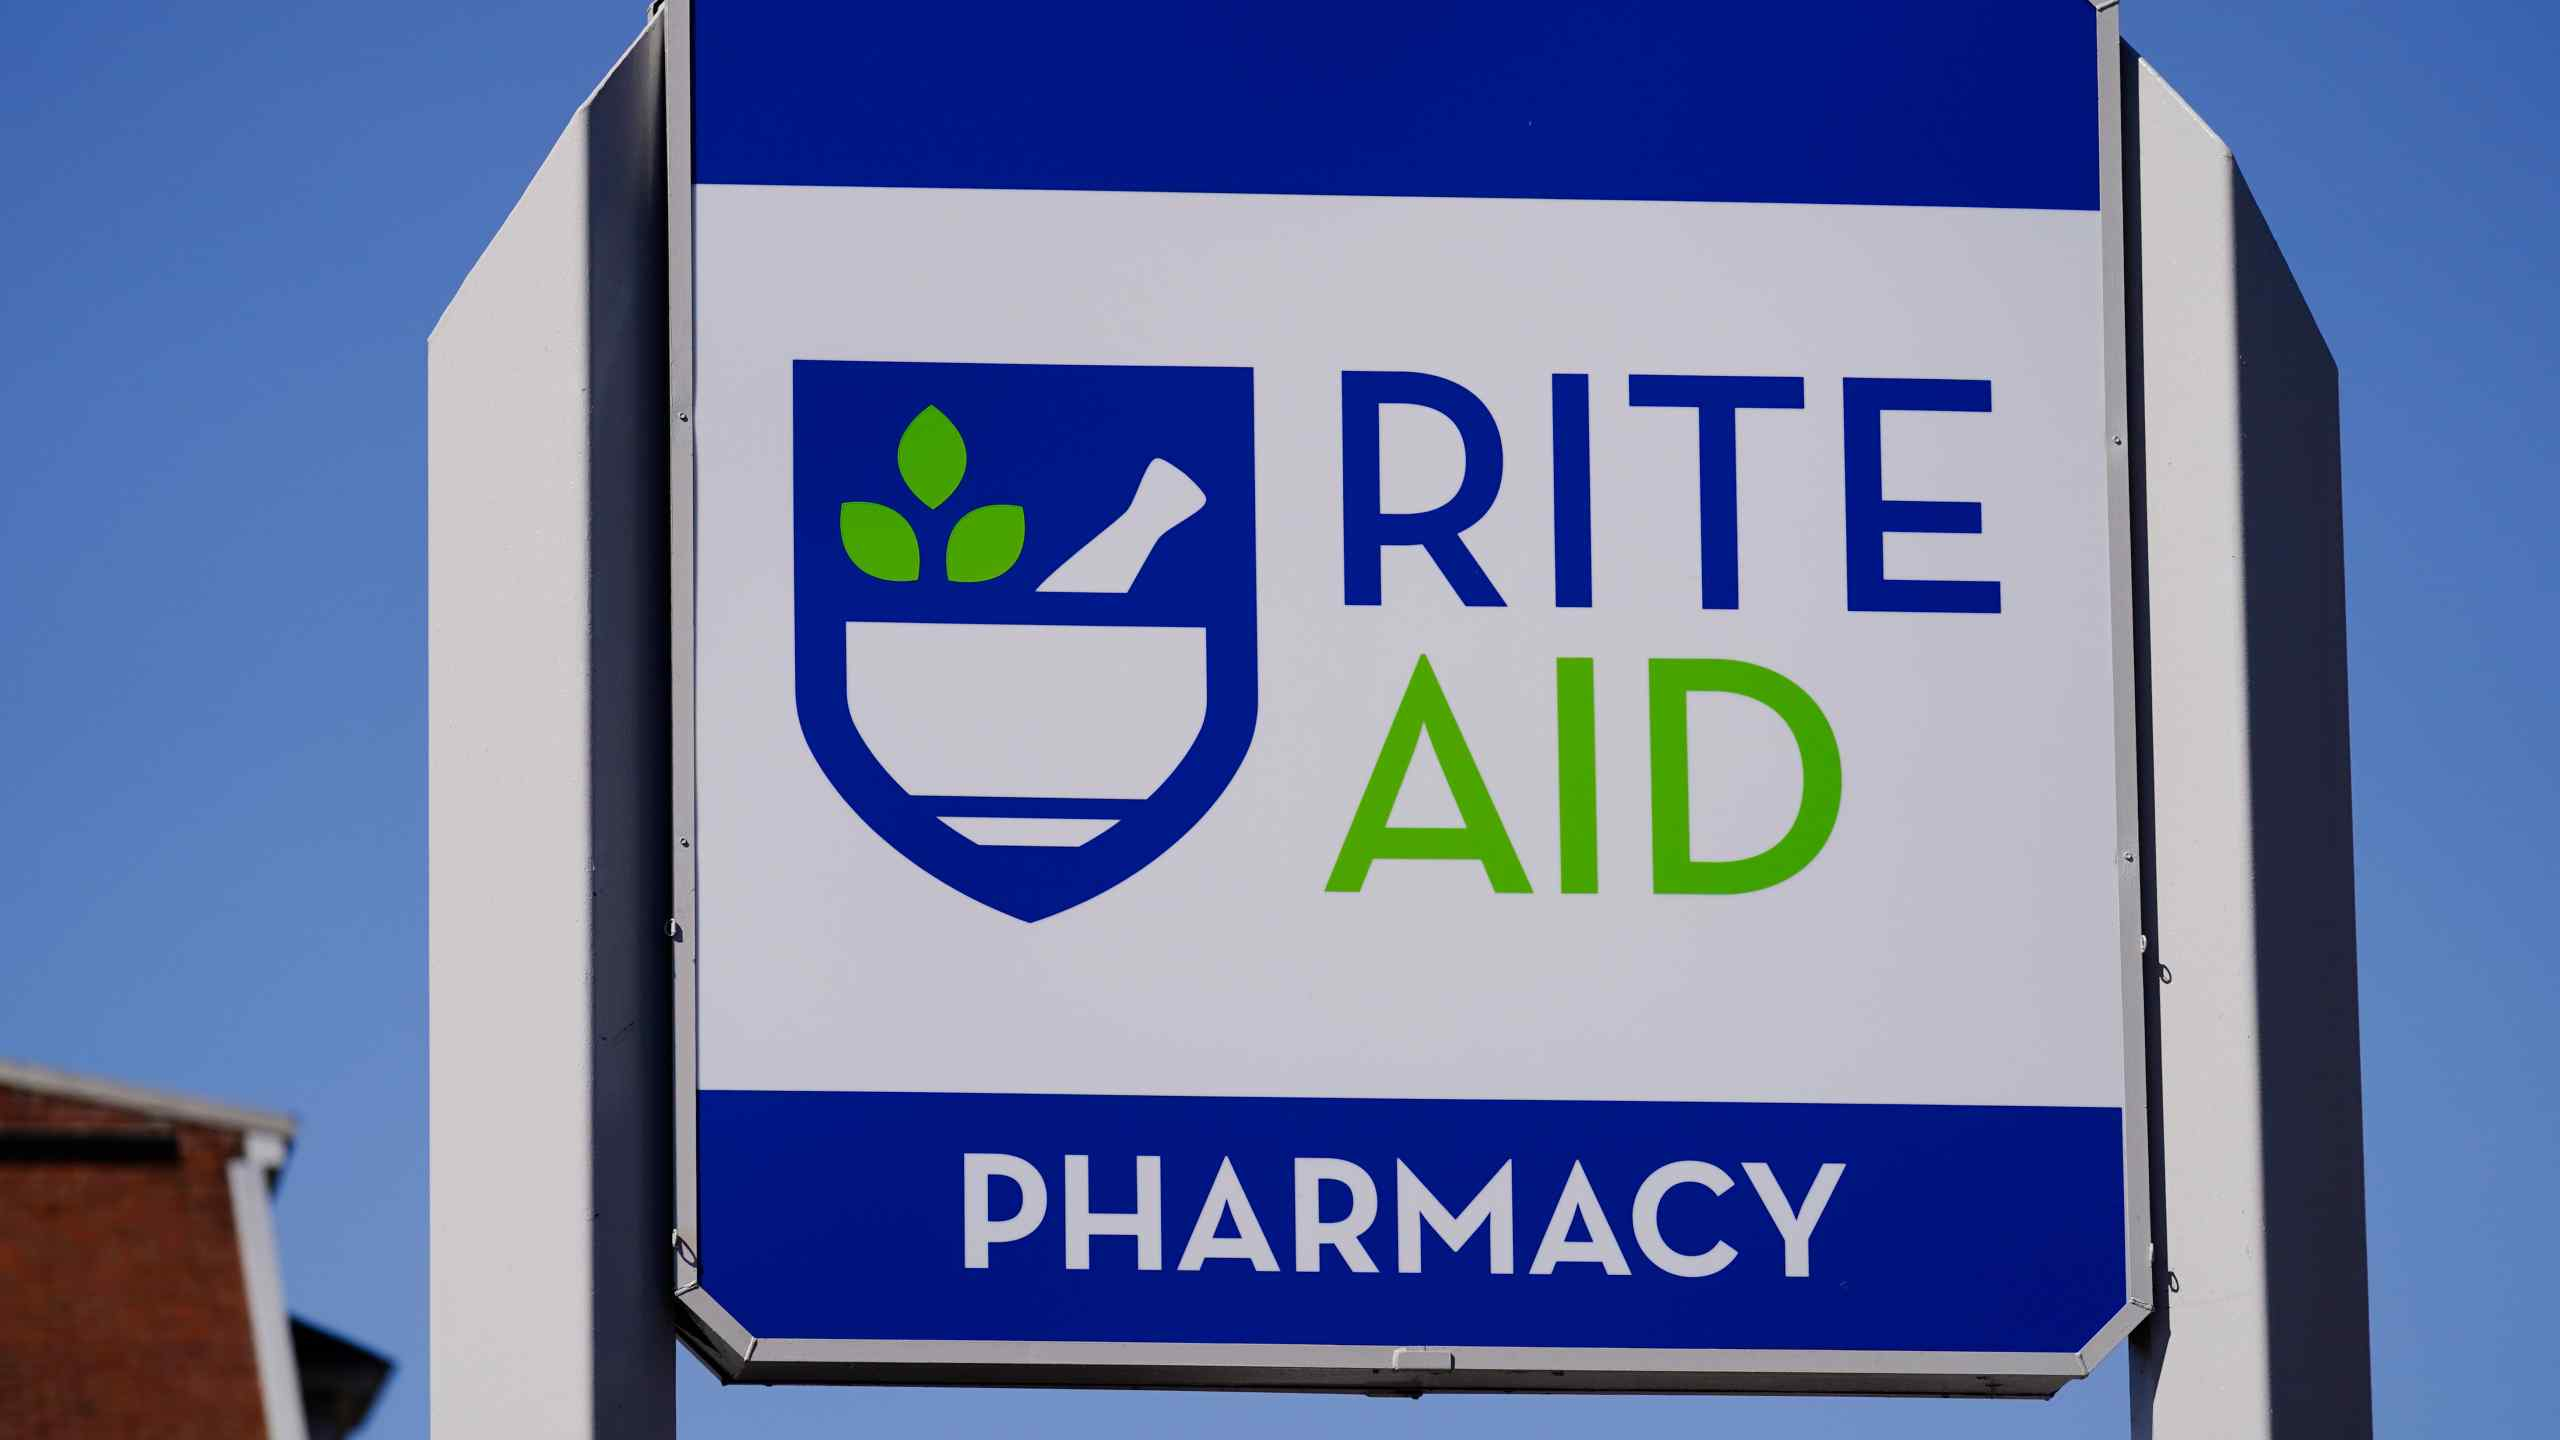 How to take part in Rite Aid Survey